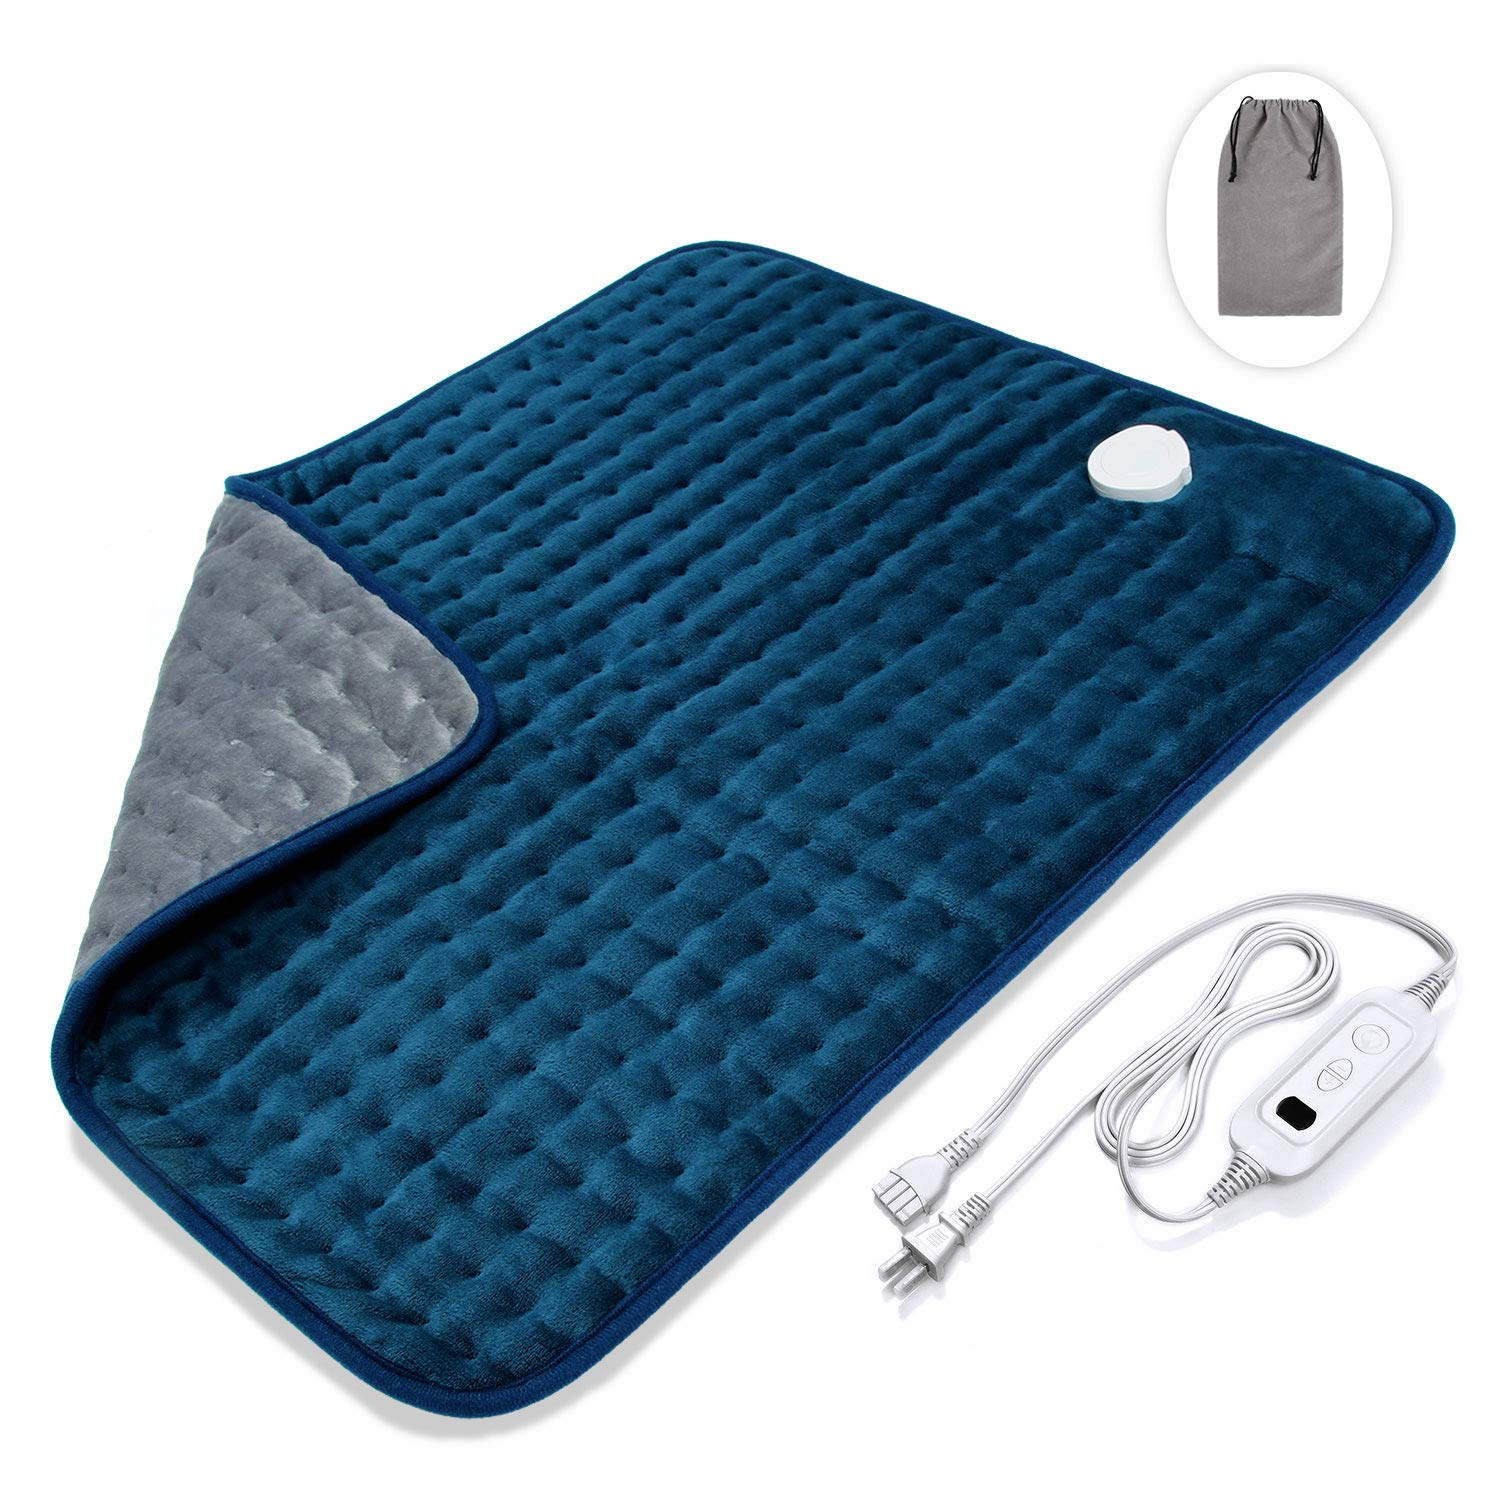 Veken XXL Electric Heating Pad with Fast-Heating Technology, Moist/Dry Heat, Auto Shut-Off and Machine Washable, 20'' x 24'' Ultra-Soft Heat Therapy Pad for Cramps/Back/Knee/Neck and Shoulders